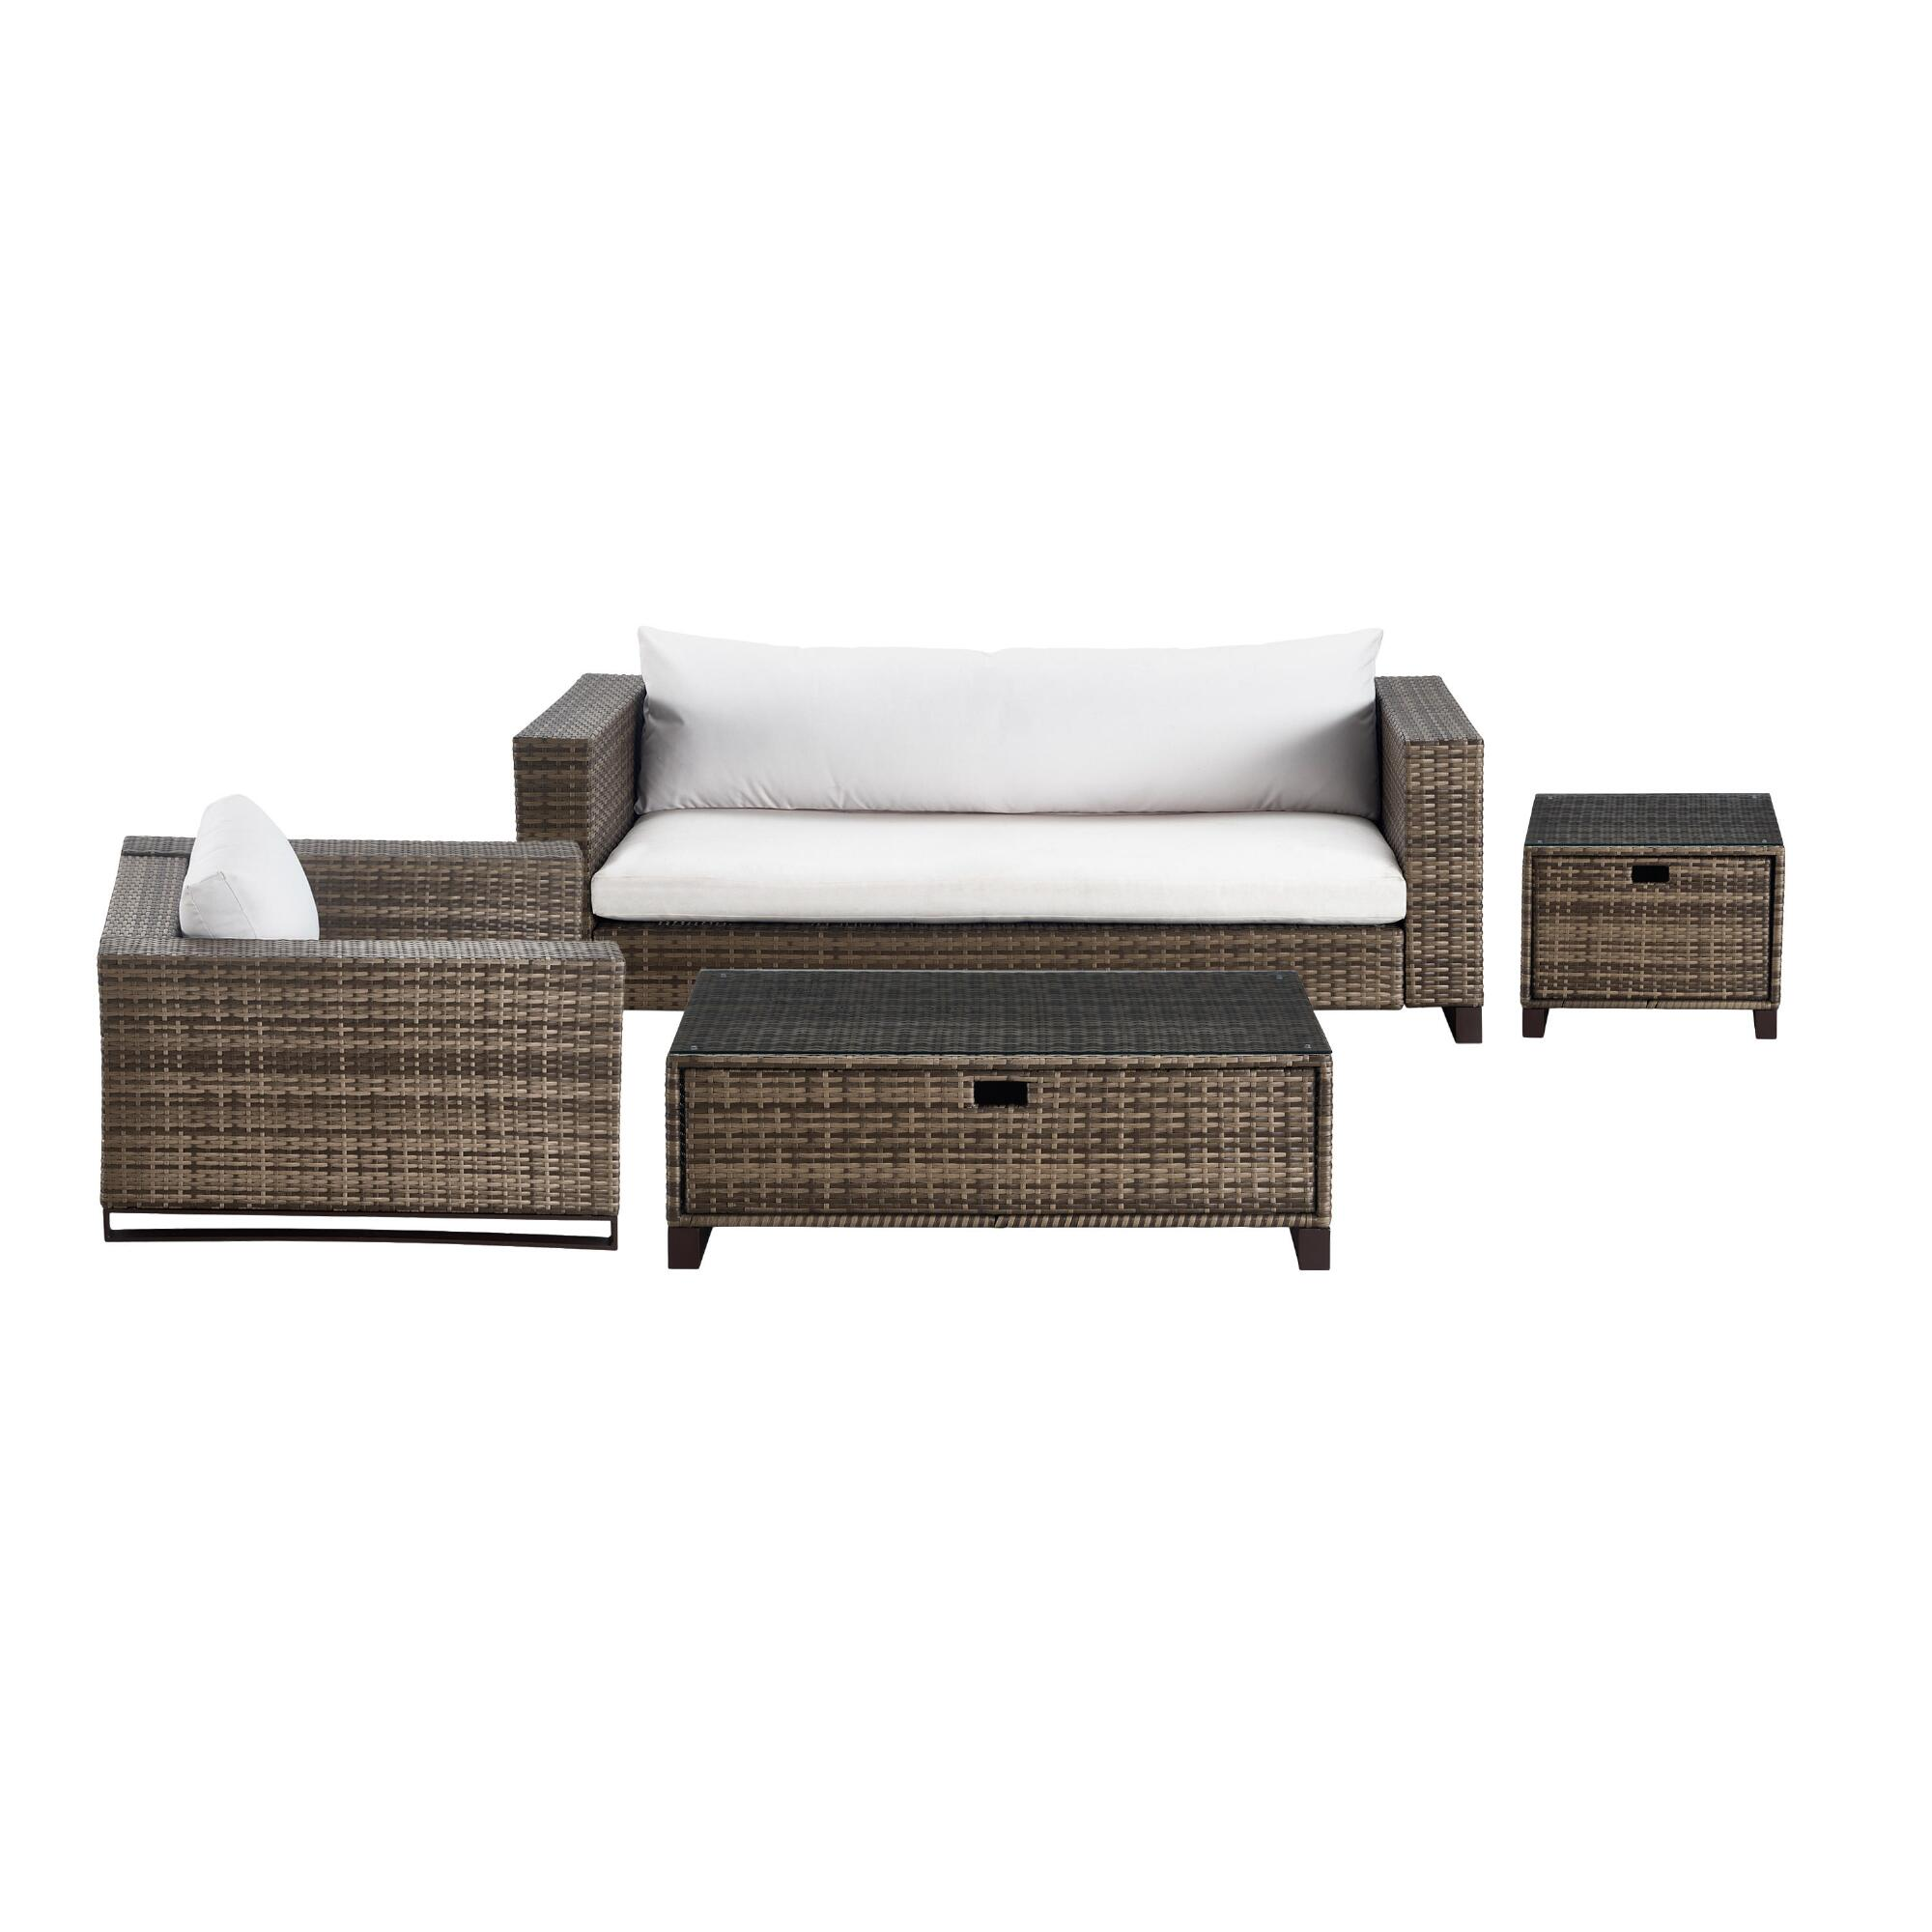 Brown All Weather Wicker Nasim Outdoor Patio Occasional Collection by World Market